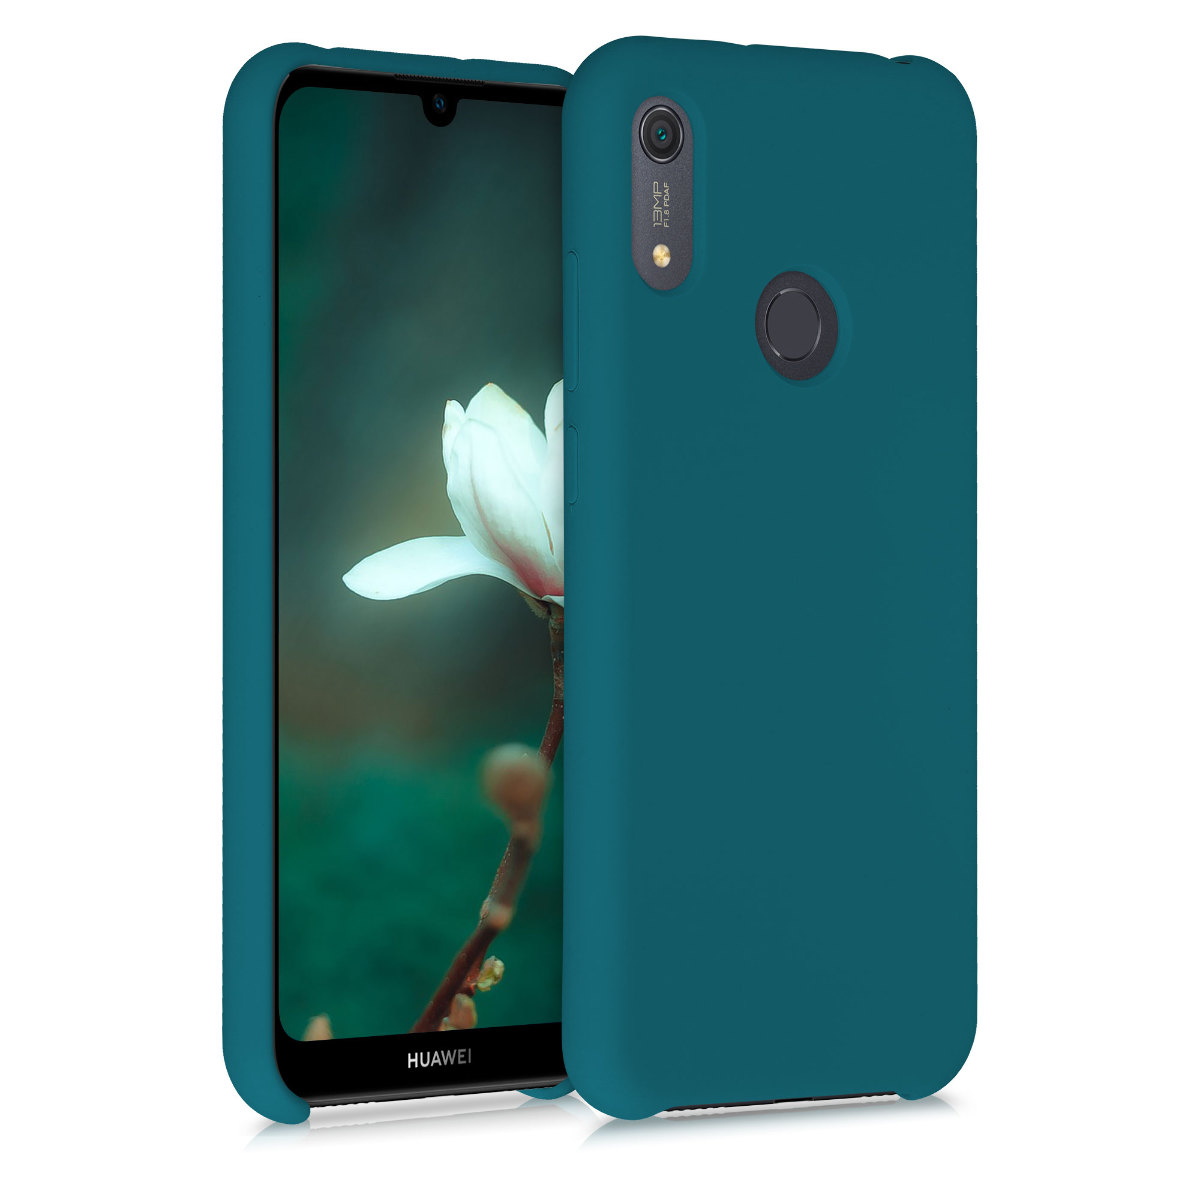 KW Θήκη Σιλικόνης Huawei Y6s 2019 - Soft Flexible Rubber Protective Cover - Teal Matte (52410.57)